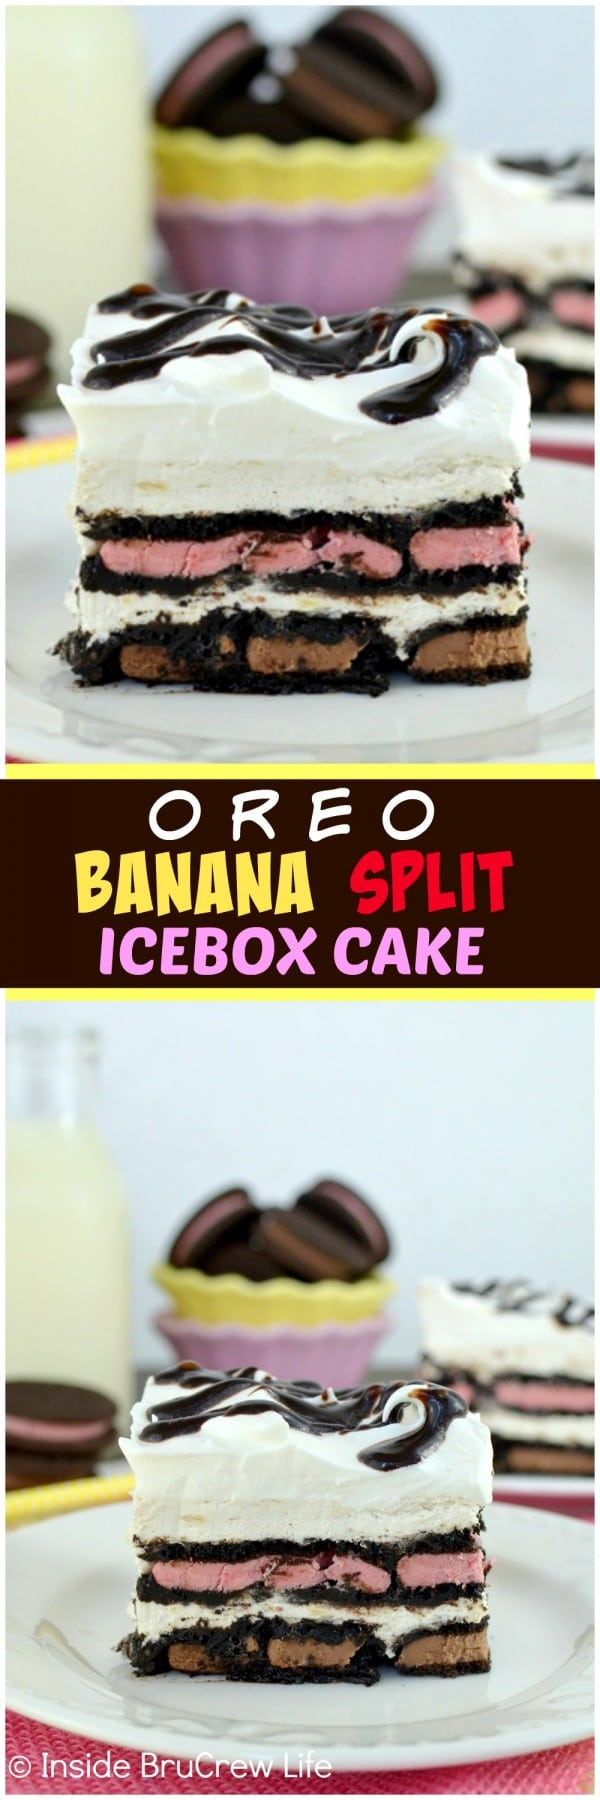 Oreo Banana Split Ice Box Cake - layers of cookies and banana cheesecake makes this an impressive no bake dessert. Awesome picnic recipe.